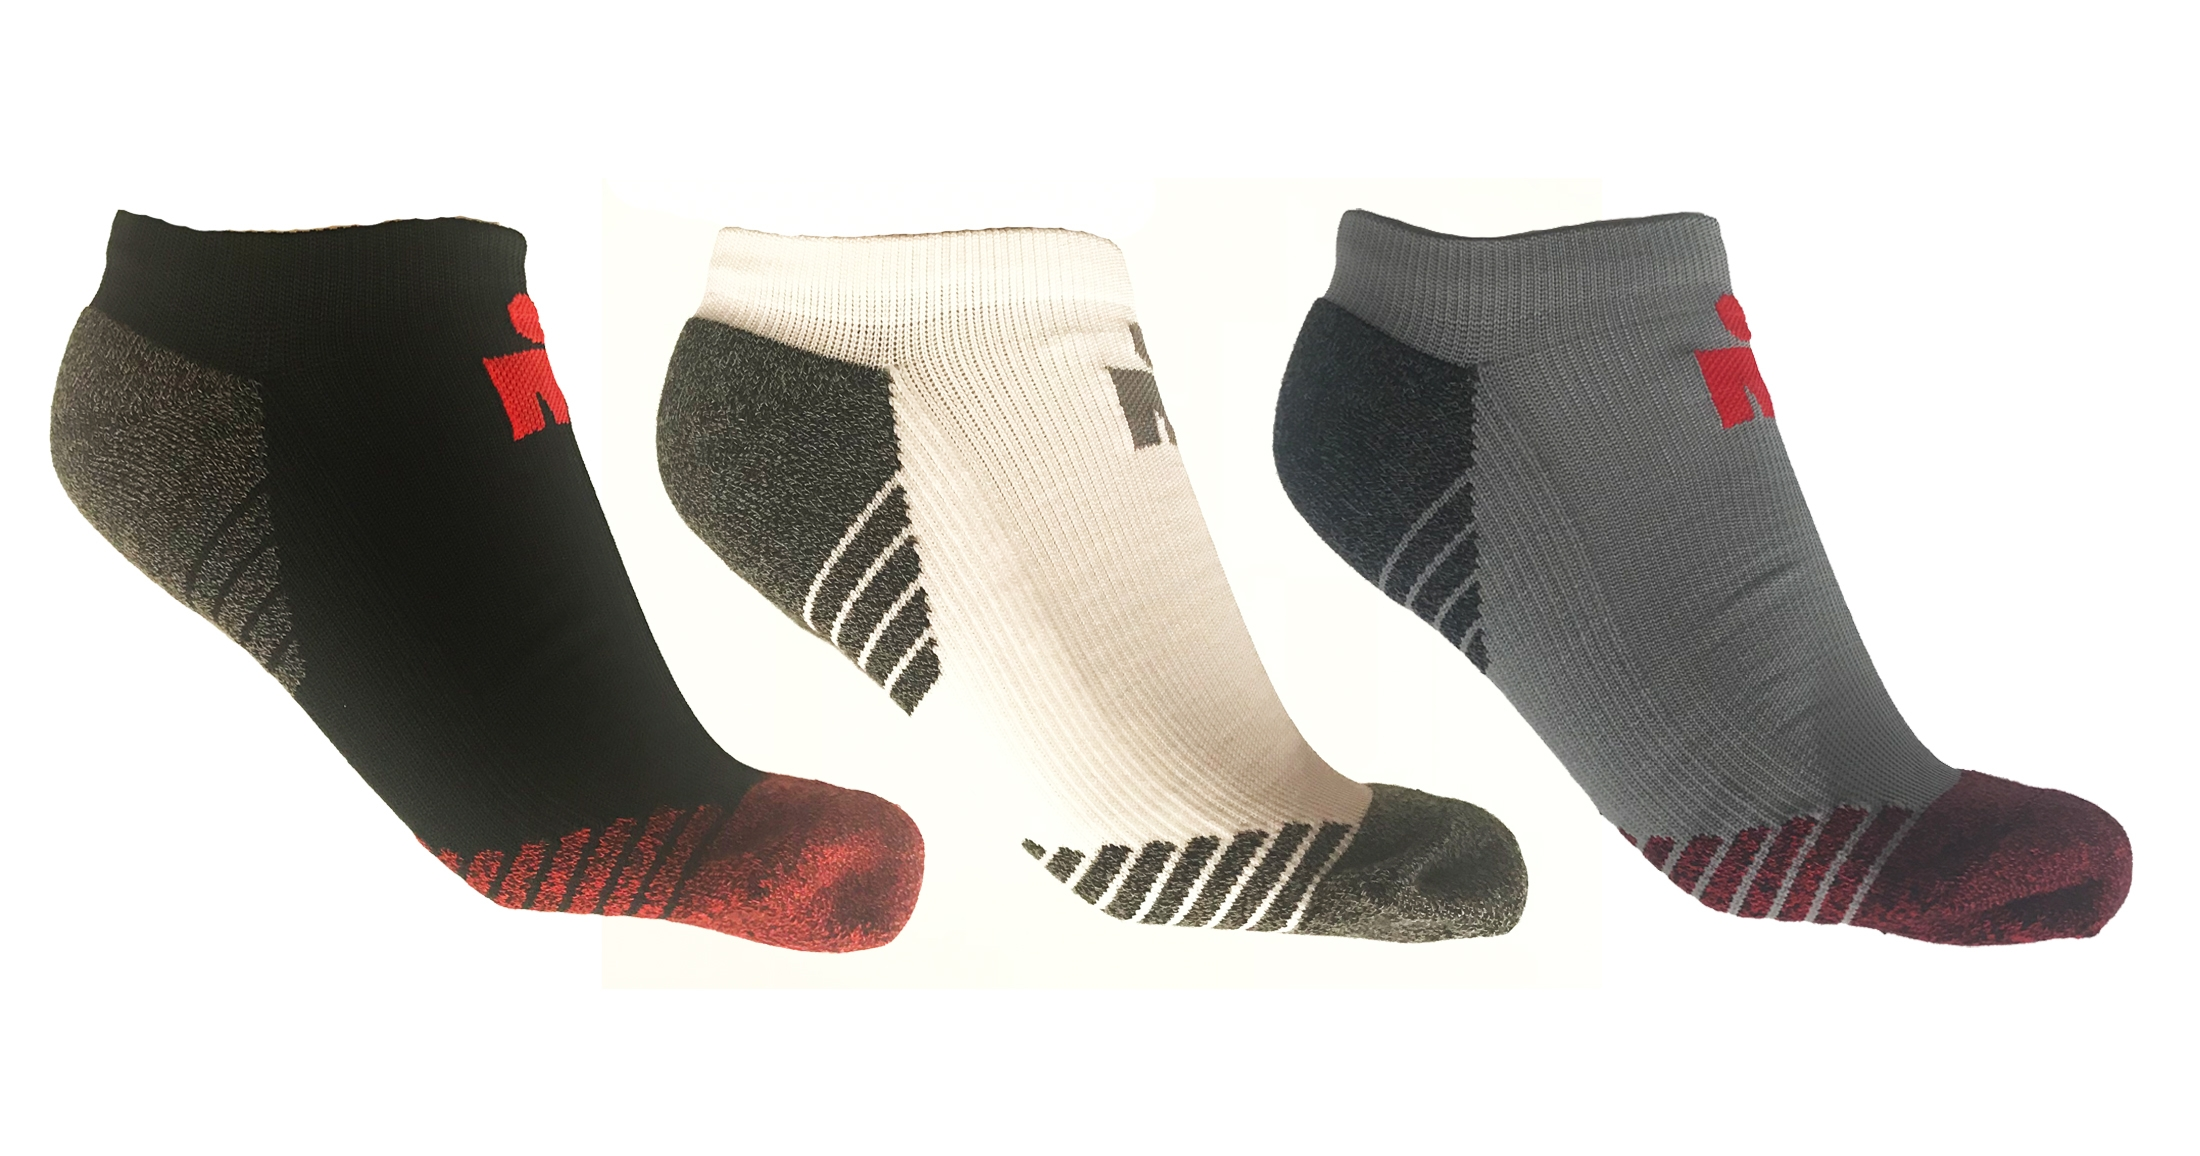 IRONMAN NO SHOW SOCK 3 PACK - Grey, White, Black